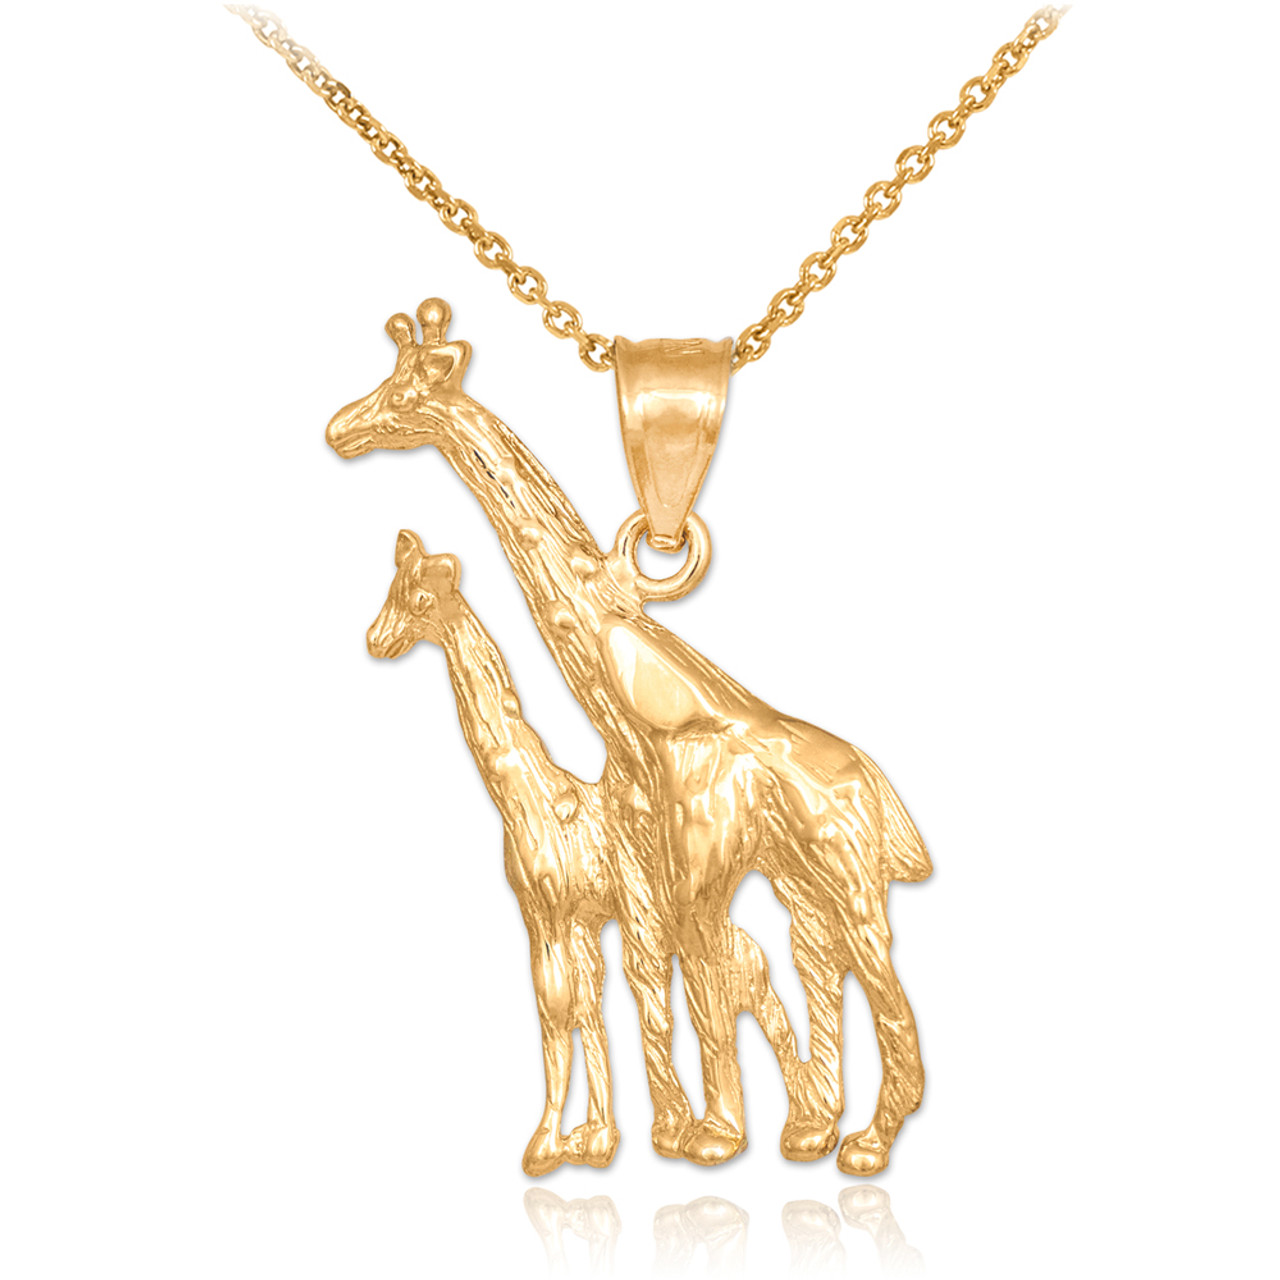 il giraffe necklace gold bzto pendant zoom listing fullxfull filled